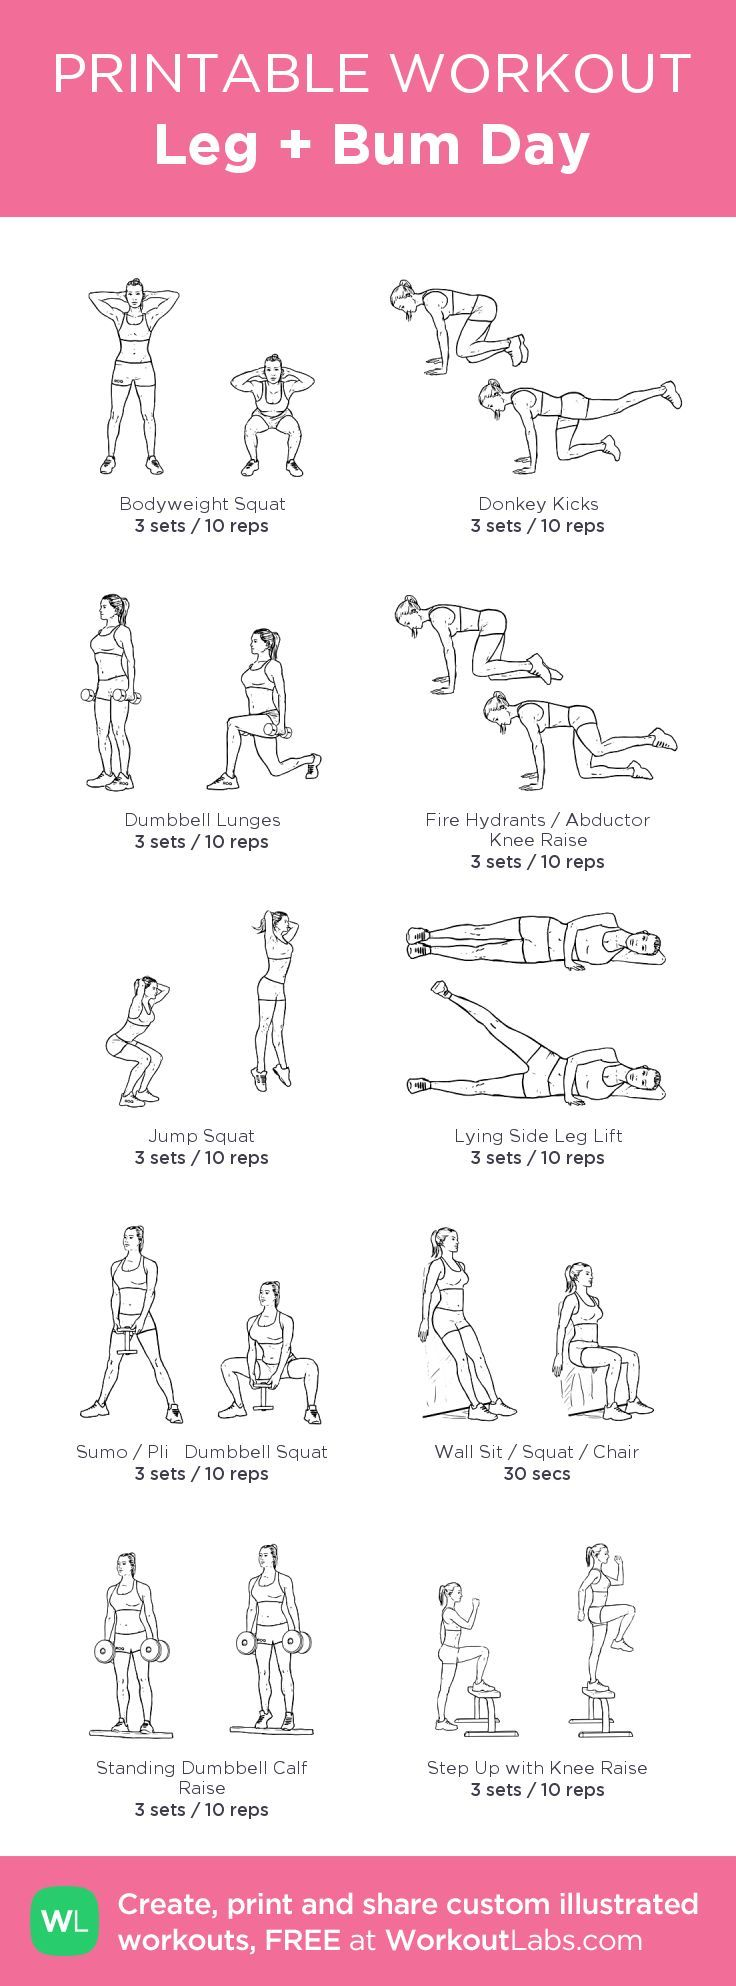 Leg + Bum Day Workout #fitspiration